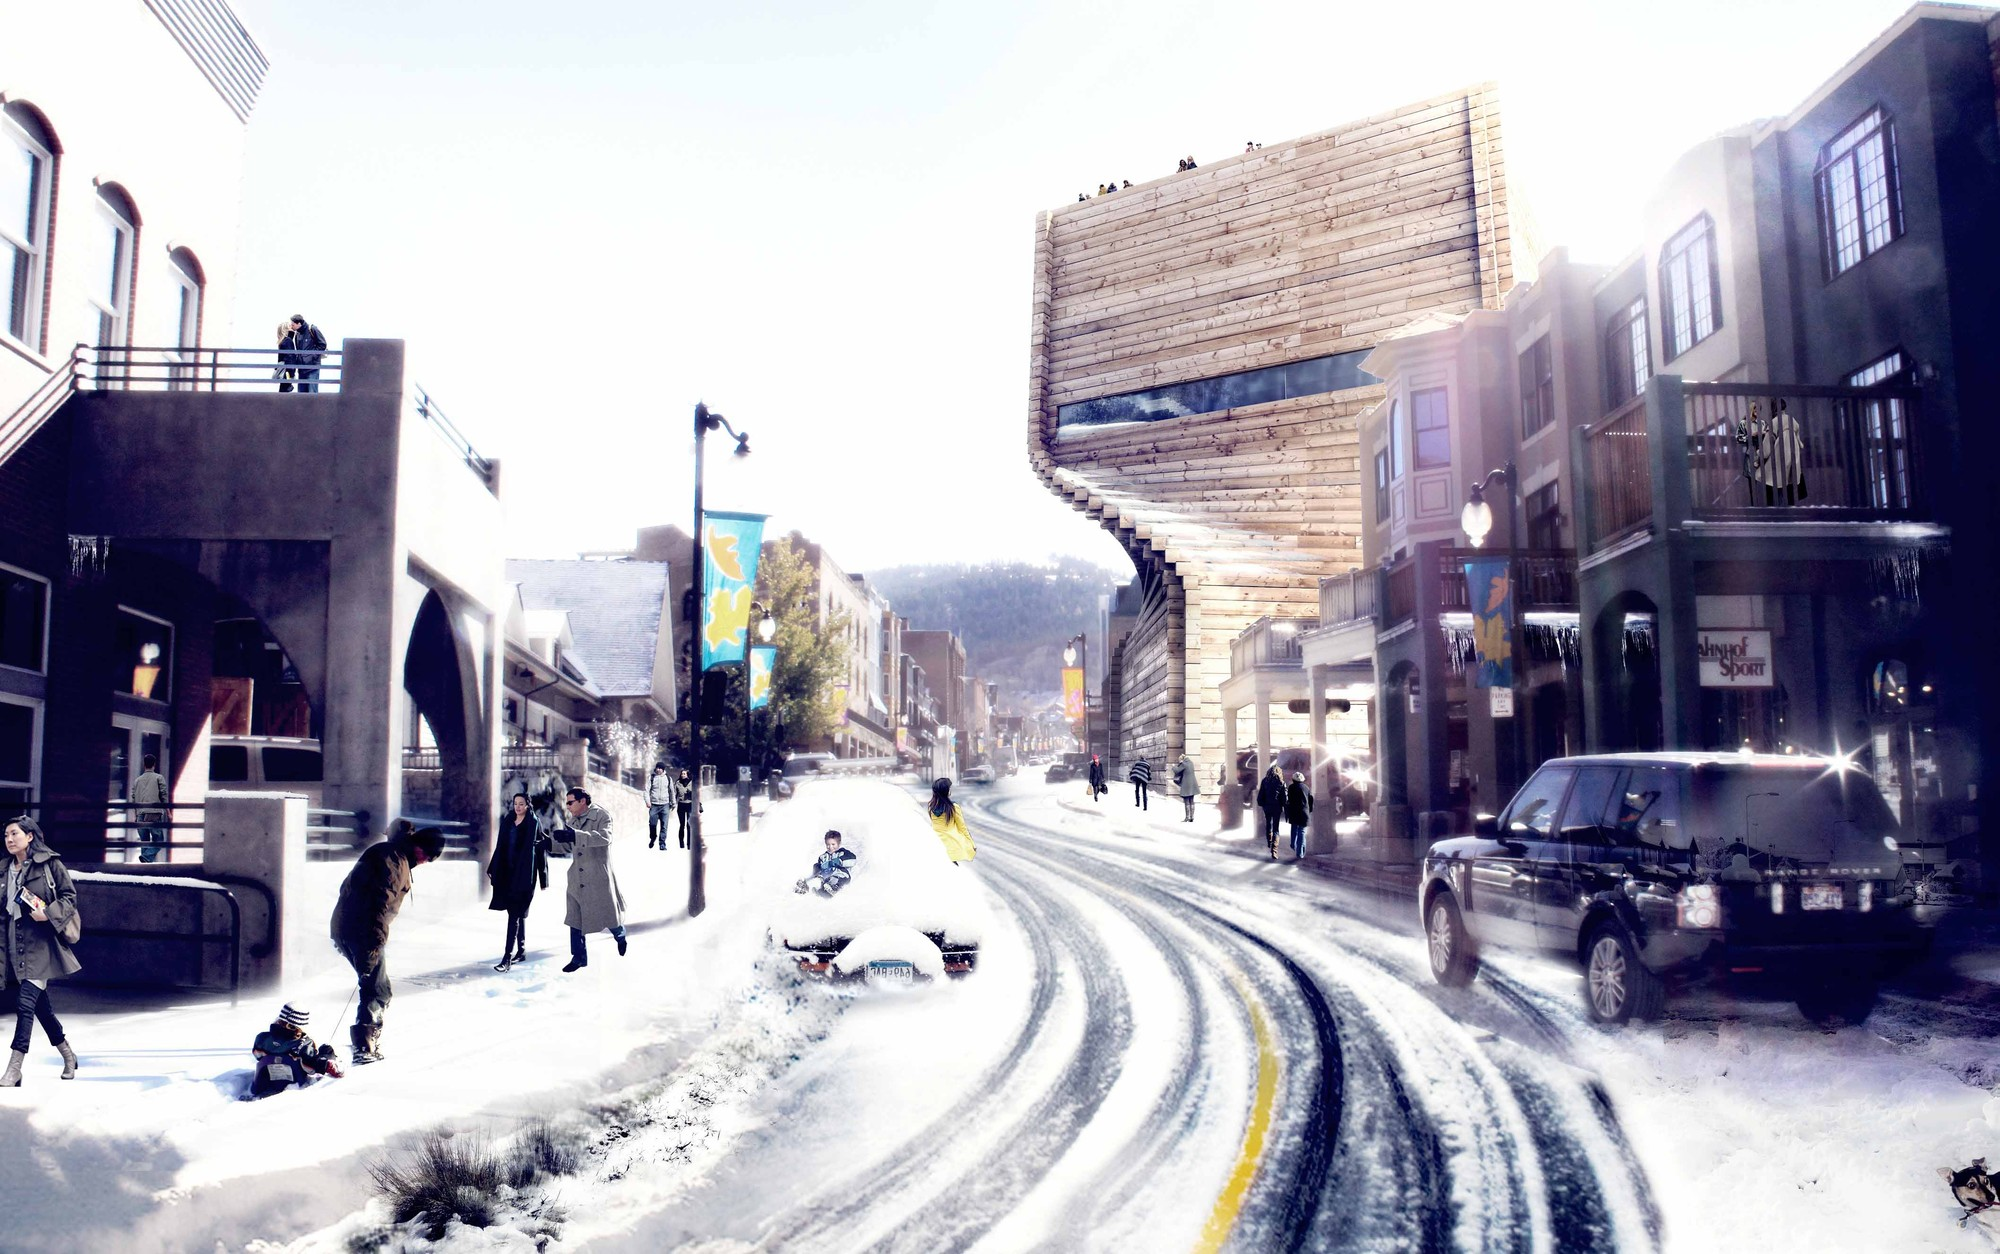 Did Park City Blow It With BIG's Kimball Art Center?, The original design for the Kimball Art Center. Image Courtesy of Bjarke Ingels Group (BIG)